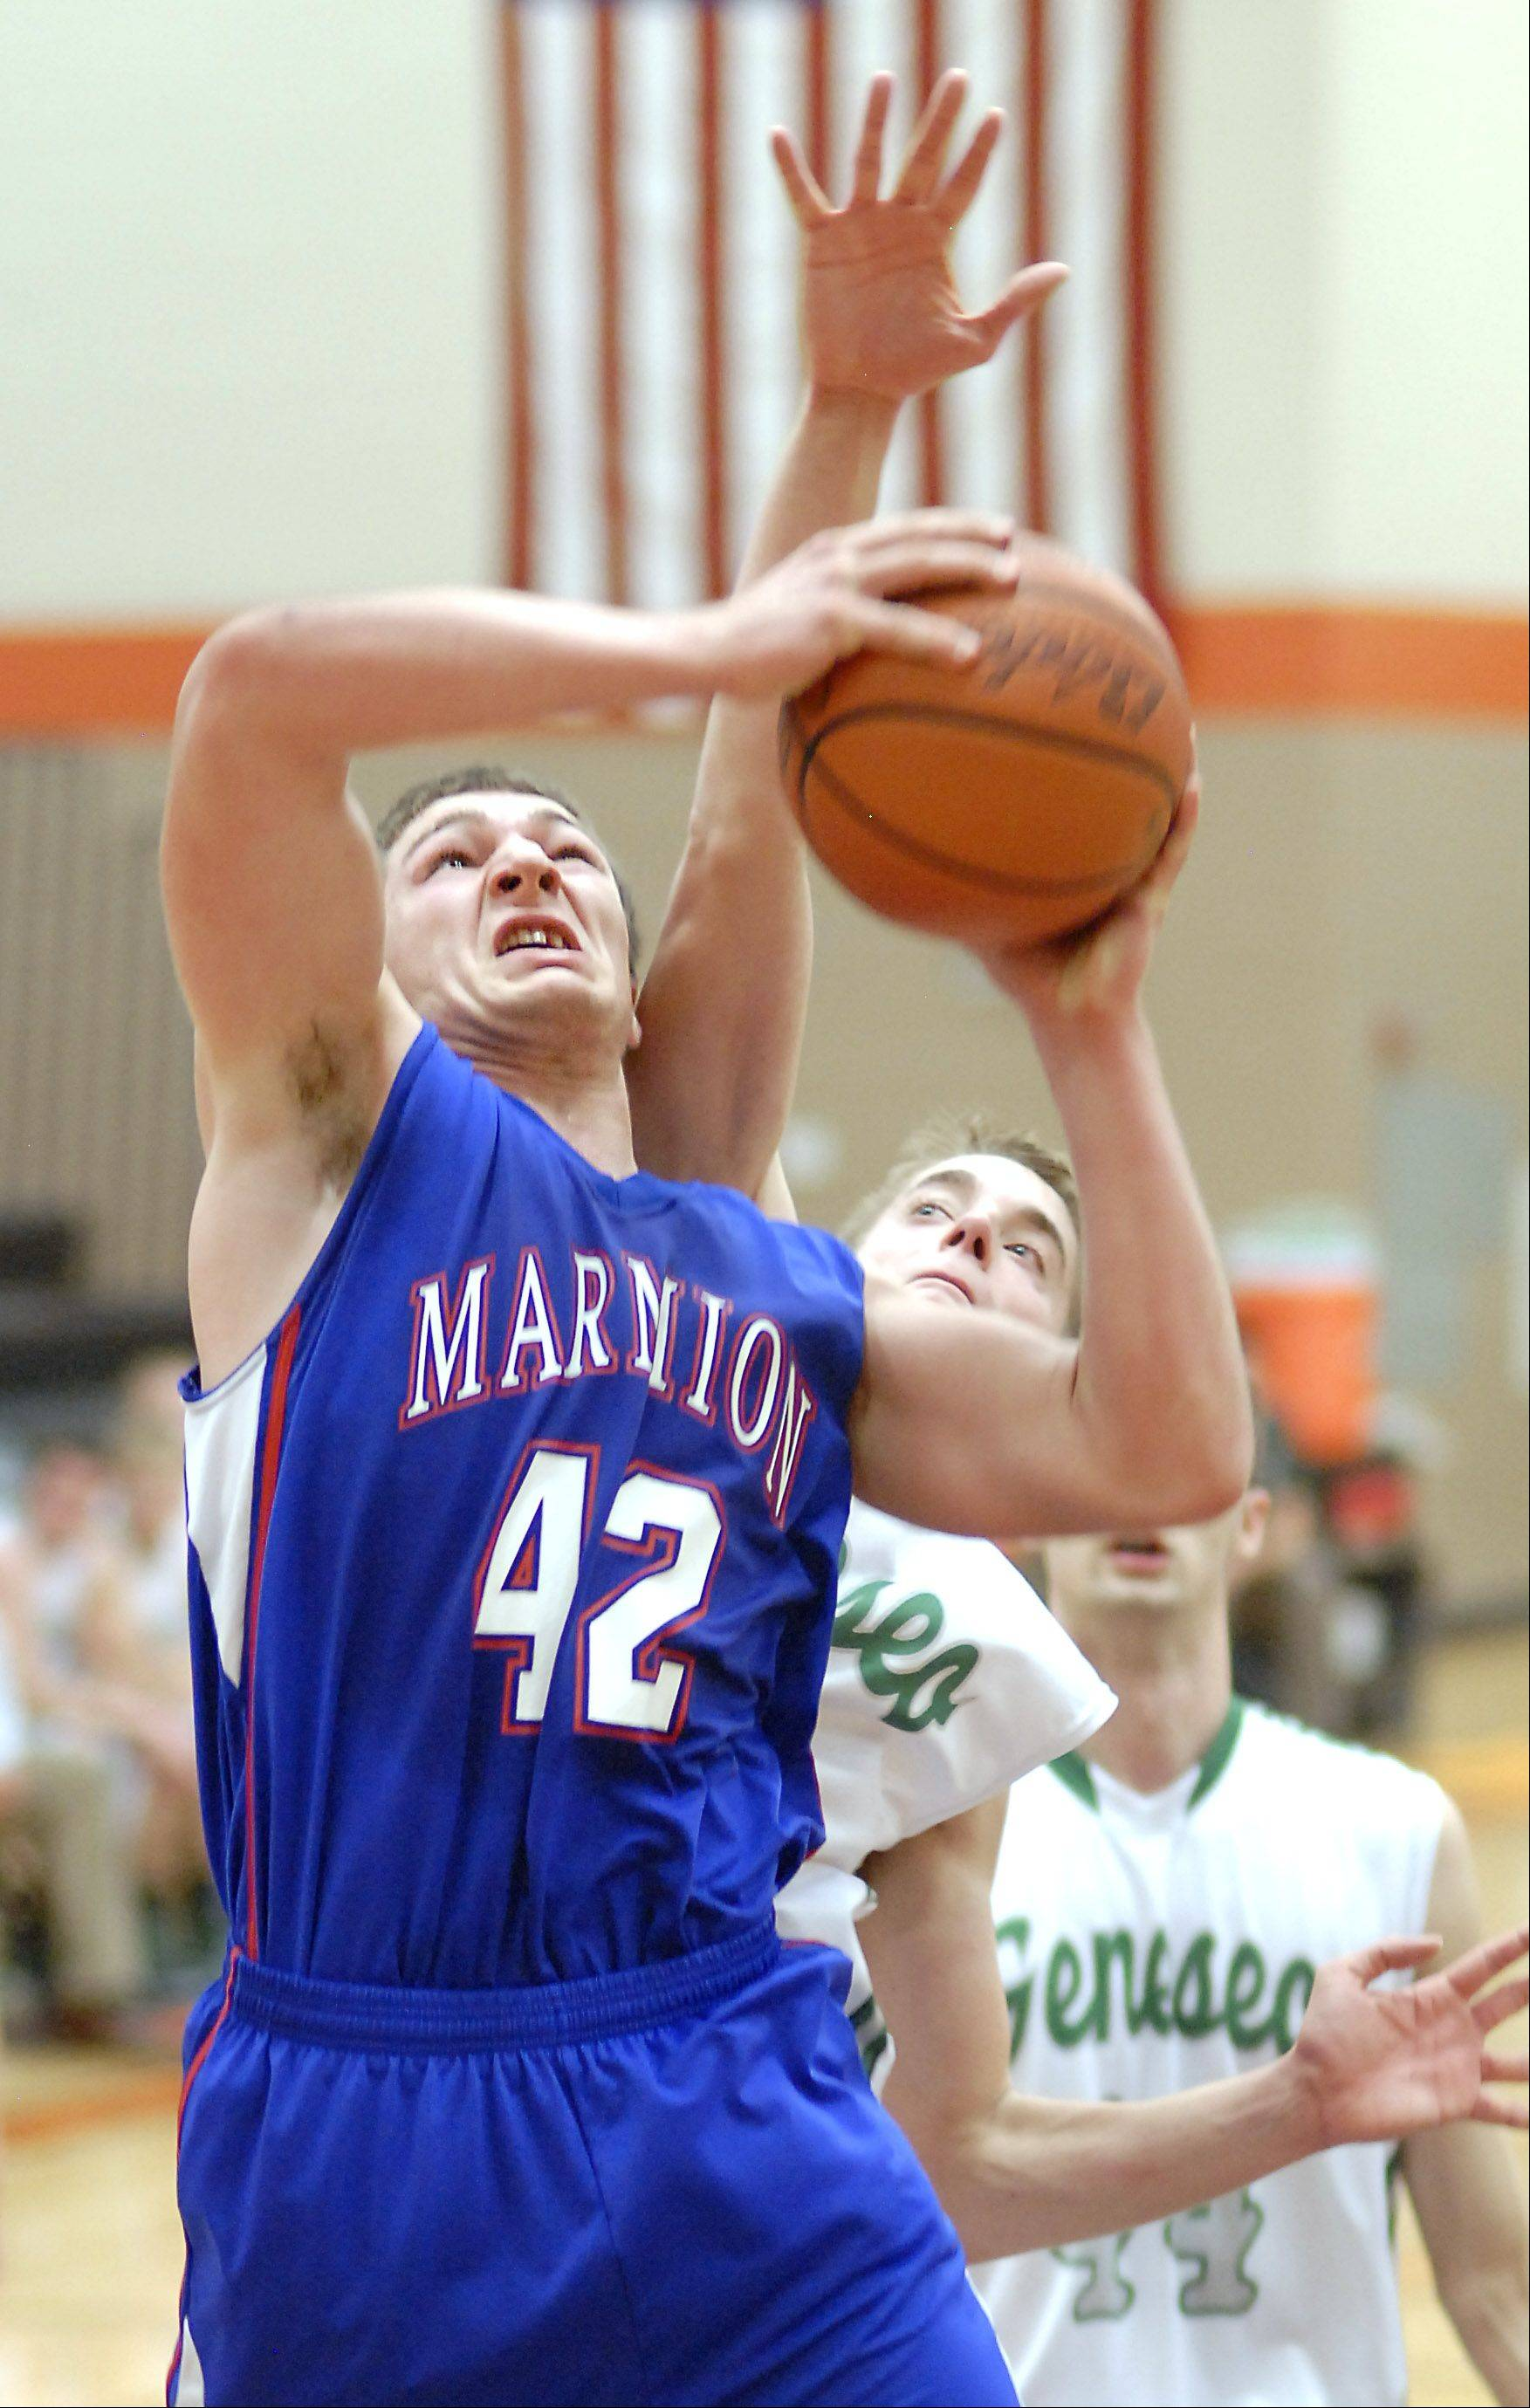 Marmion's Jordan Glasgow shoots during a block by Geneseo's Ethan Reschke in the fourth quarter of the DeKalb tournament on Saturday, December 22.